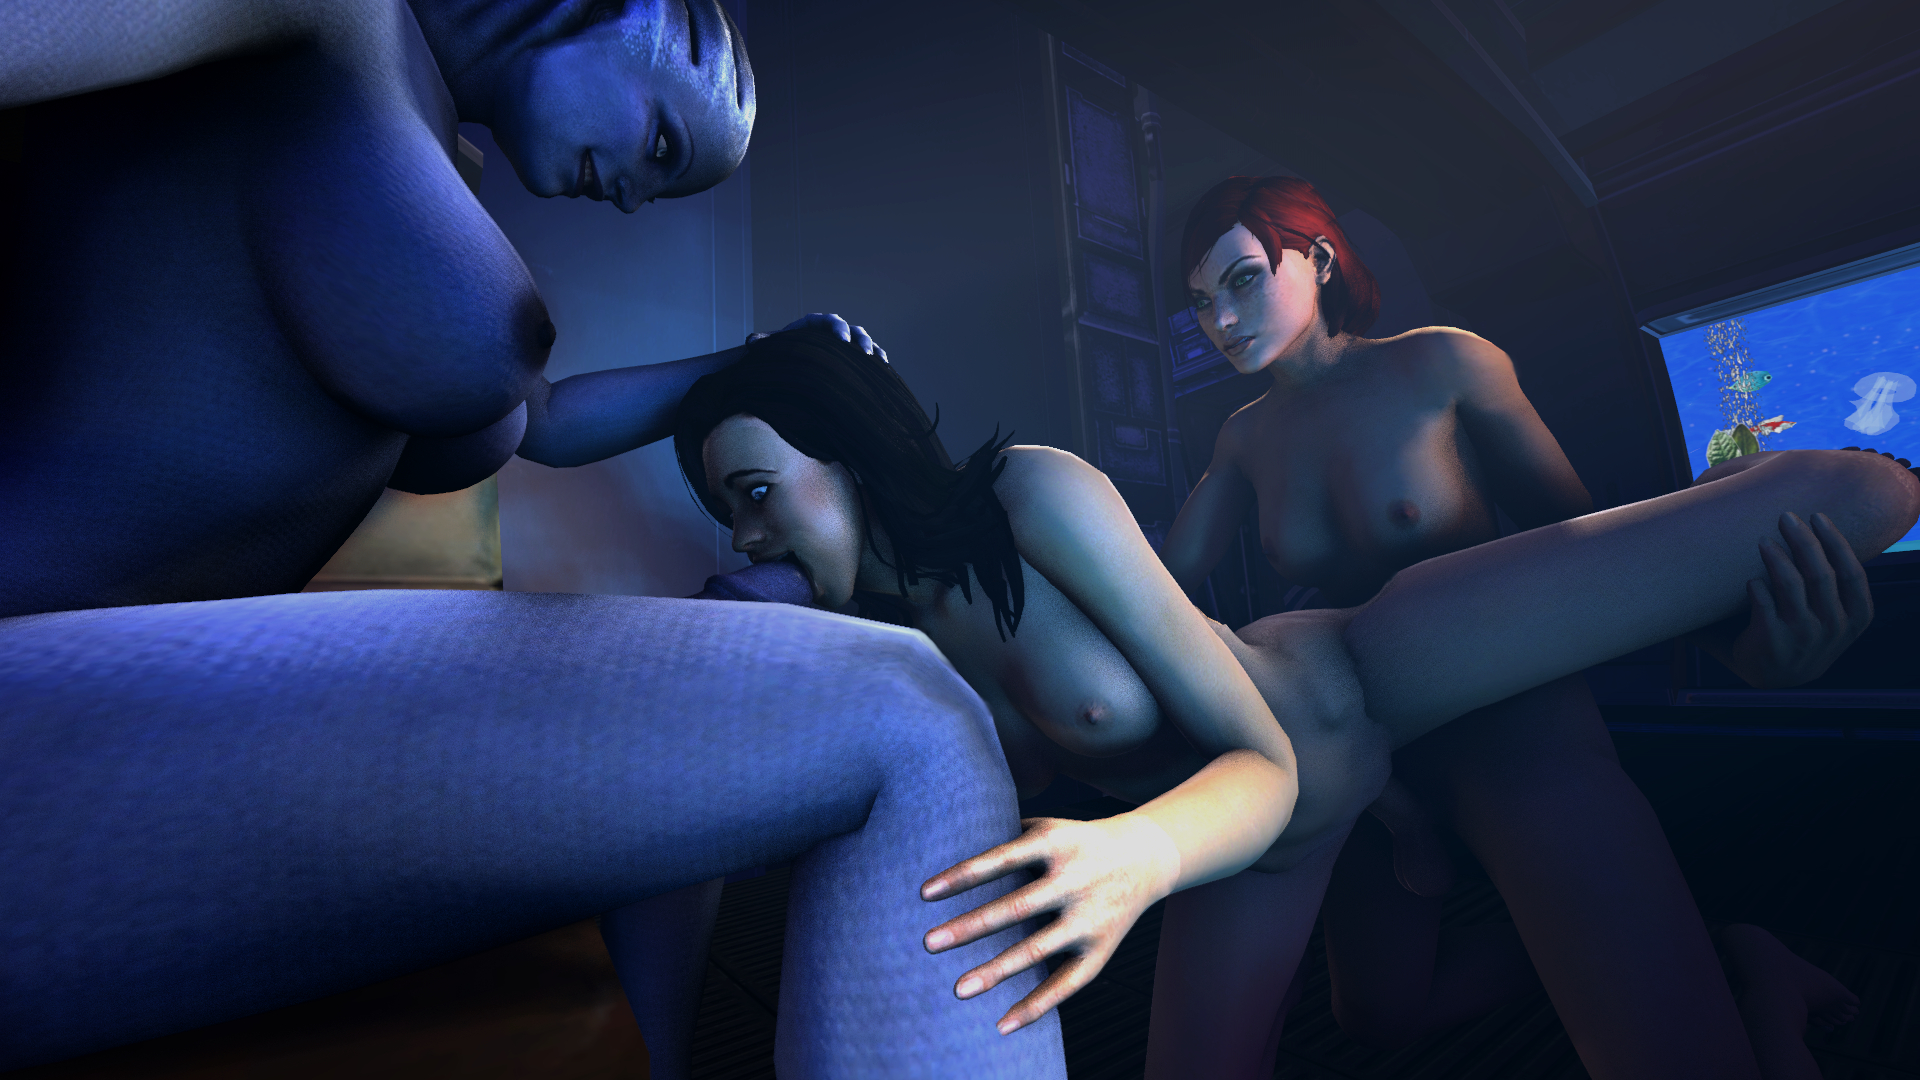 Mass effect nude patch nudeskins net porn videos